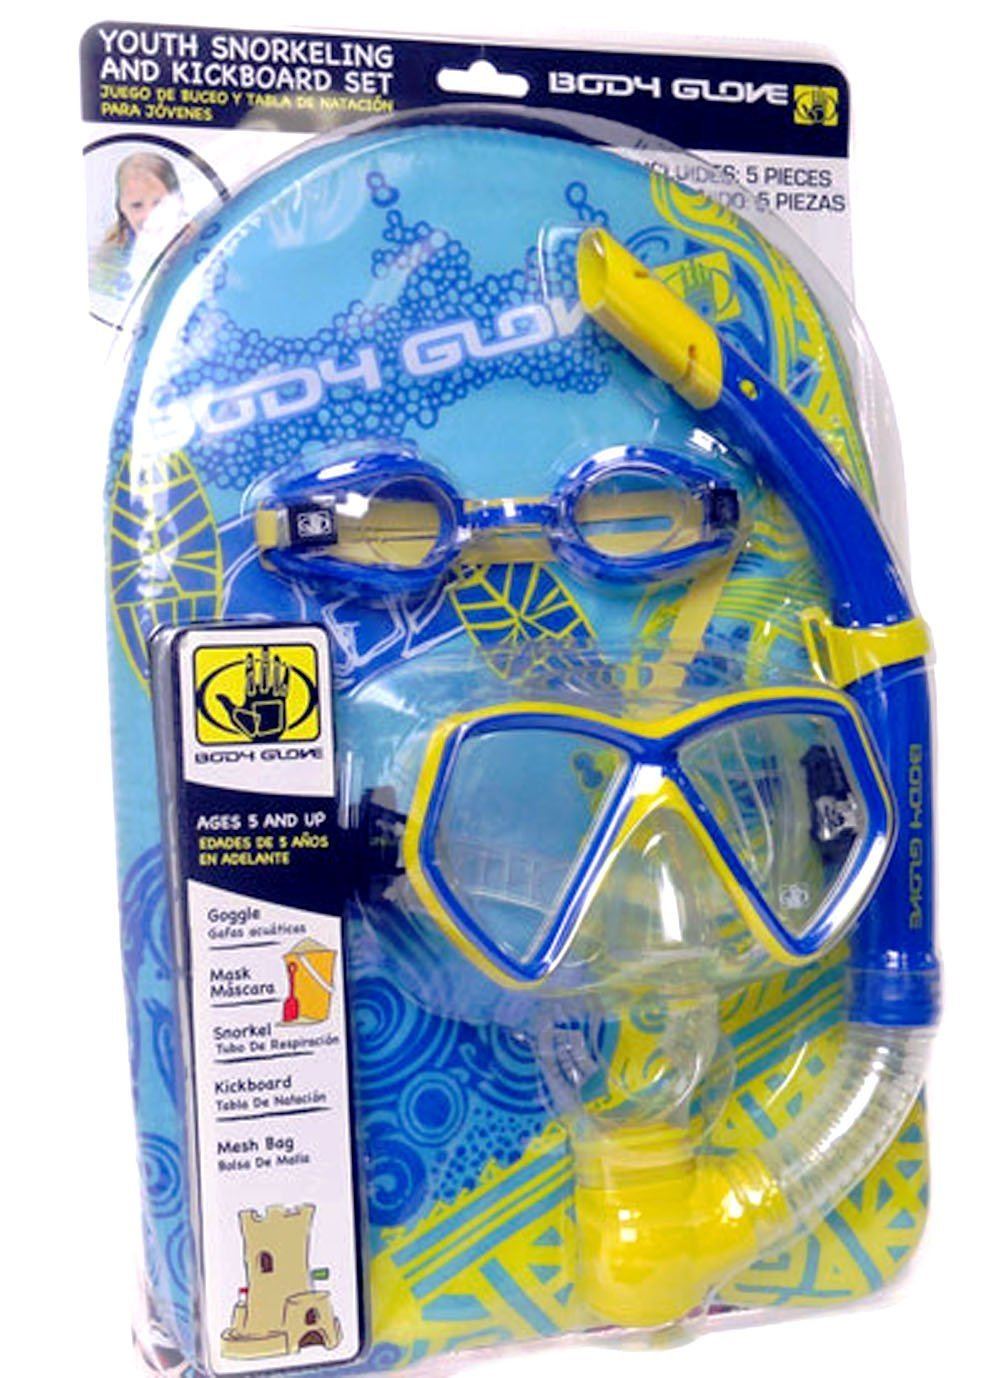 Amazon.com : Body Glove Youth Snorkeling, Mask and KickBoard (5 Pieces Set) (Blue) : Snorkeling Diving Packages : Sports & Outdoors